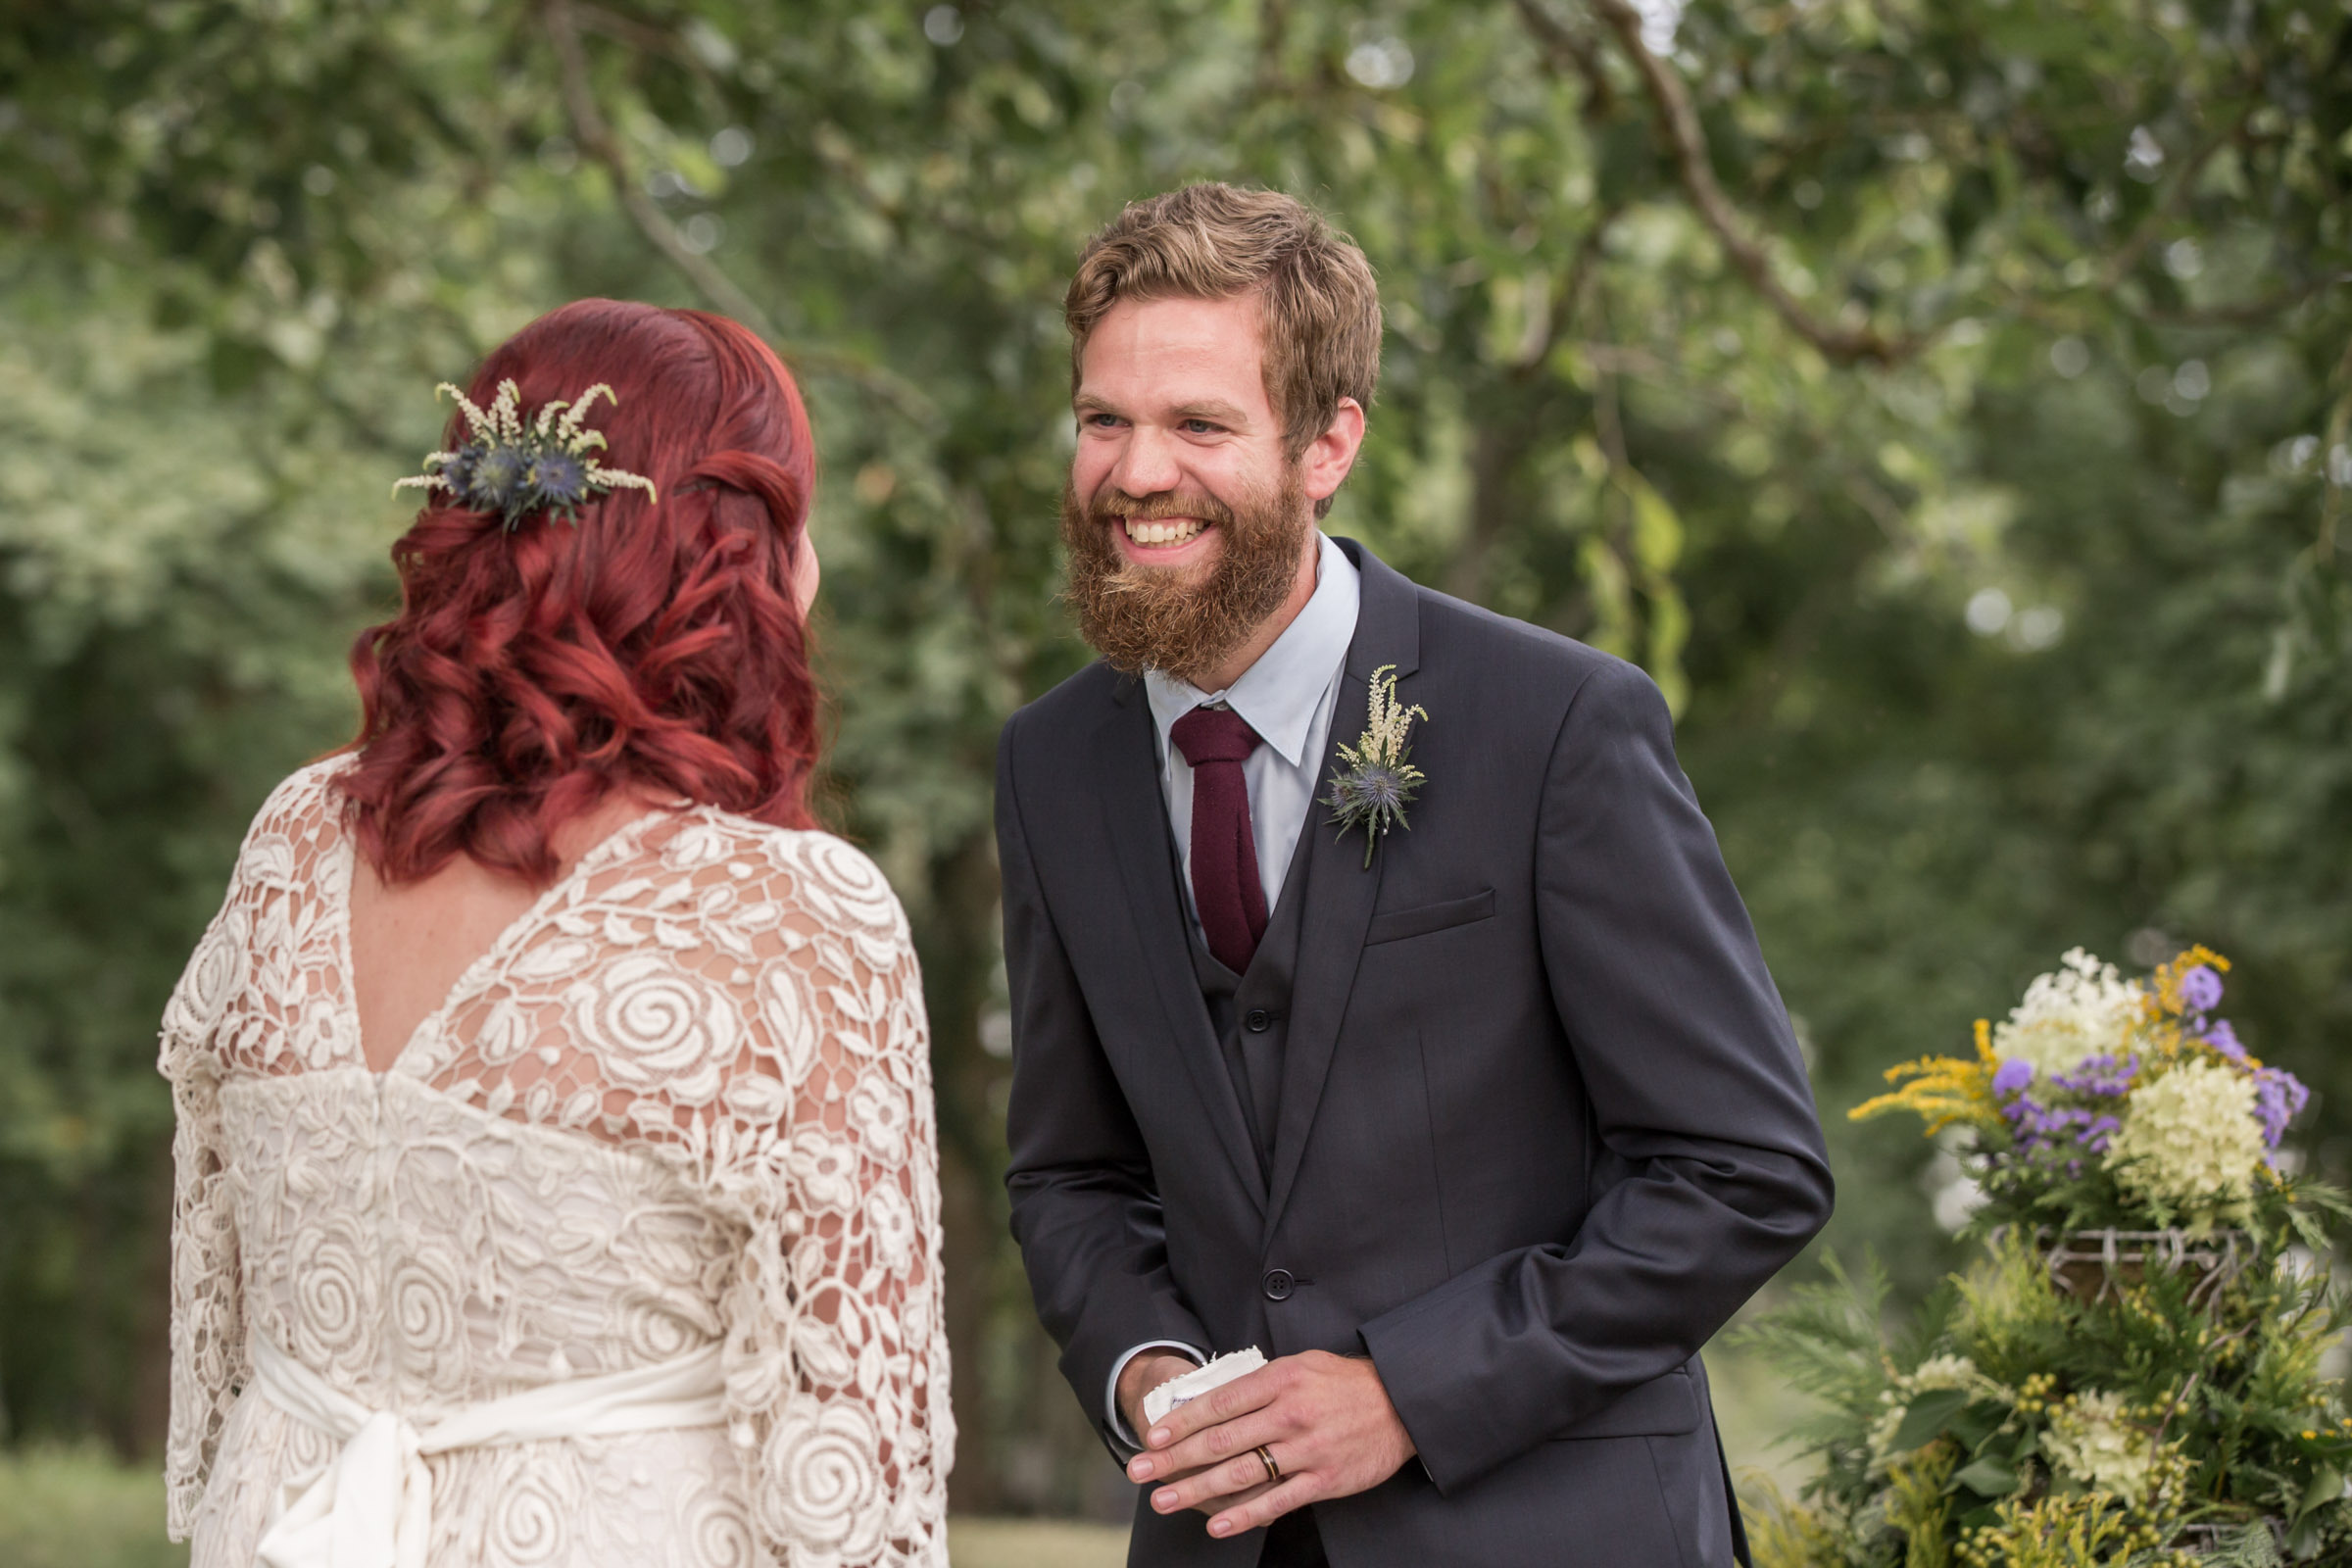 Smiling groom leans in toward bride - photo by Katie Kaizer Photography